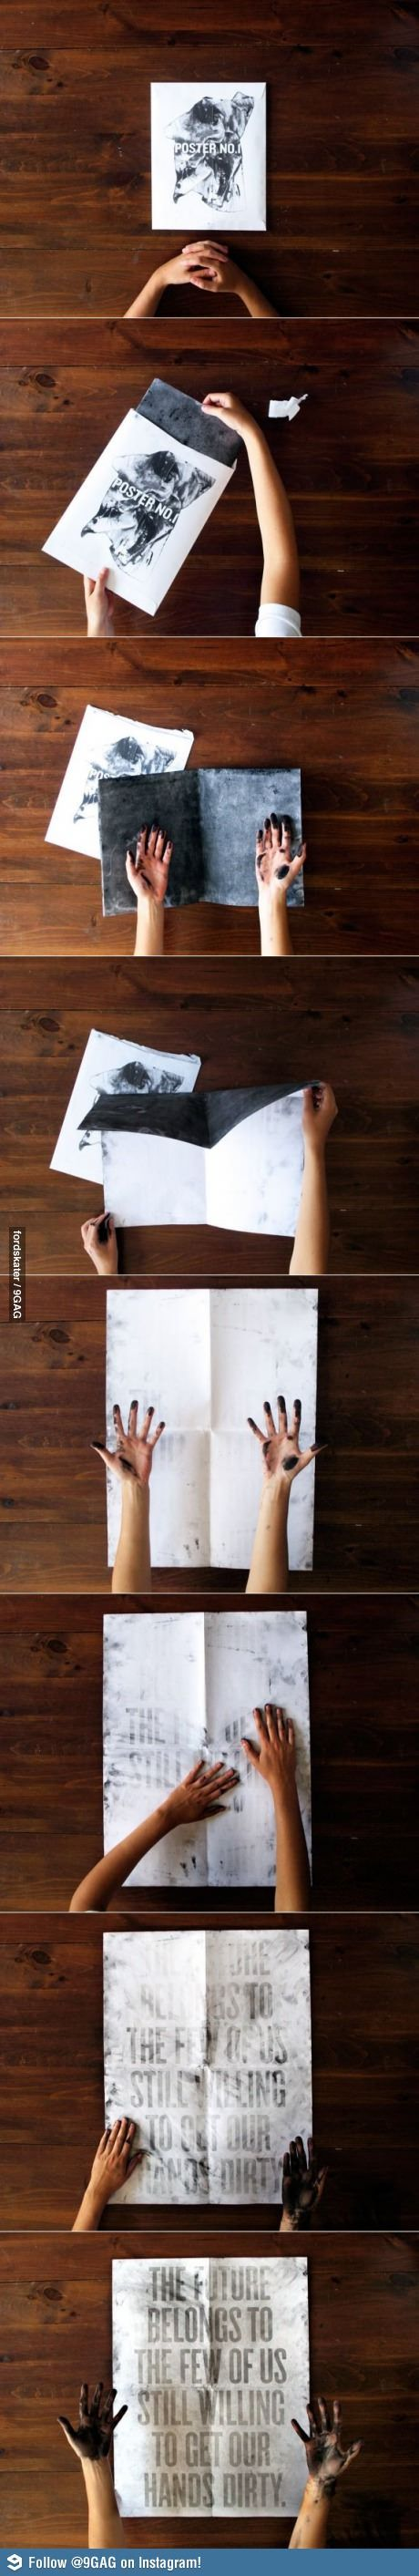 Willing to get your hands dirty poster | amazing idea!